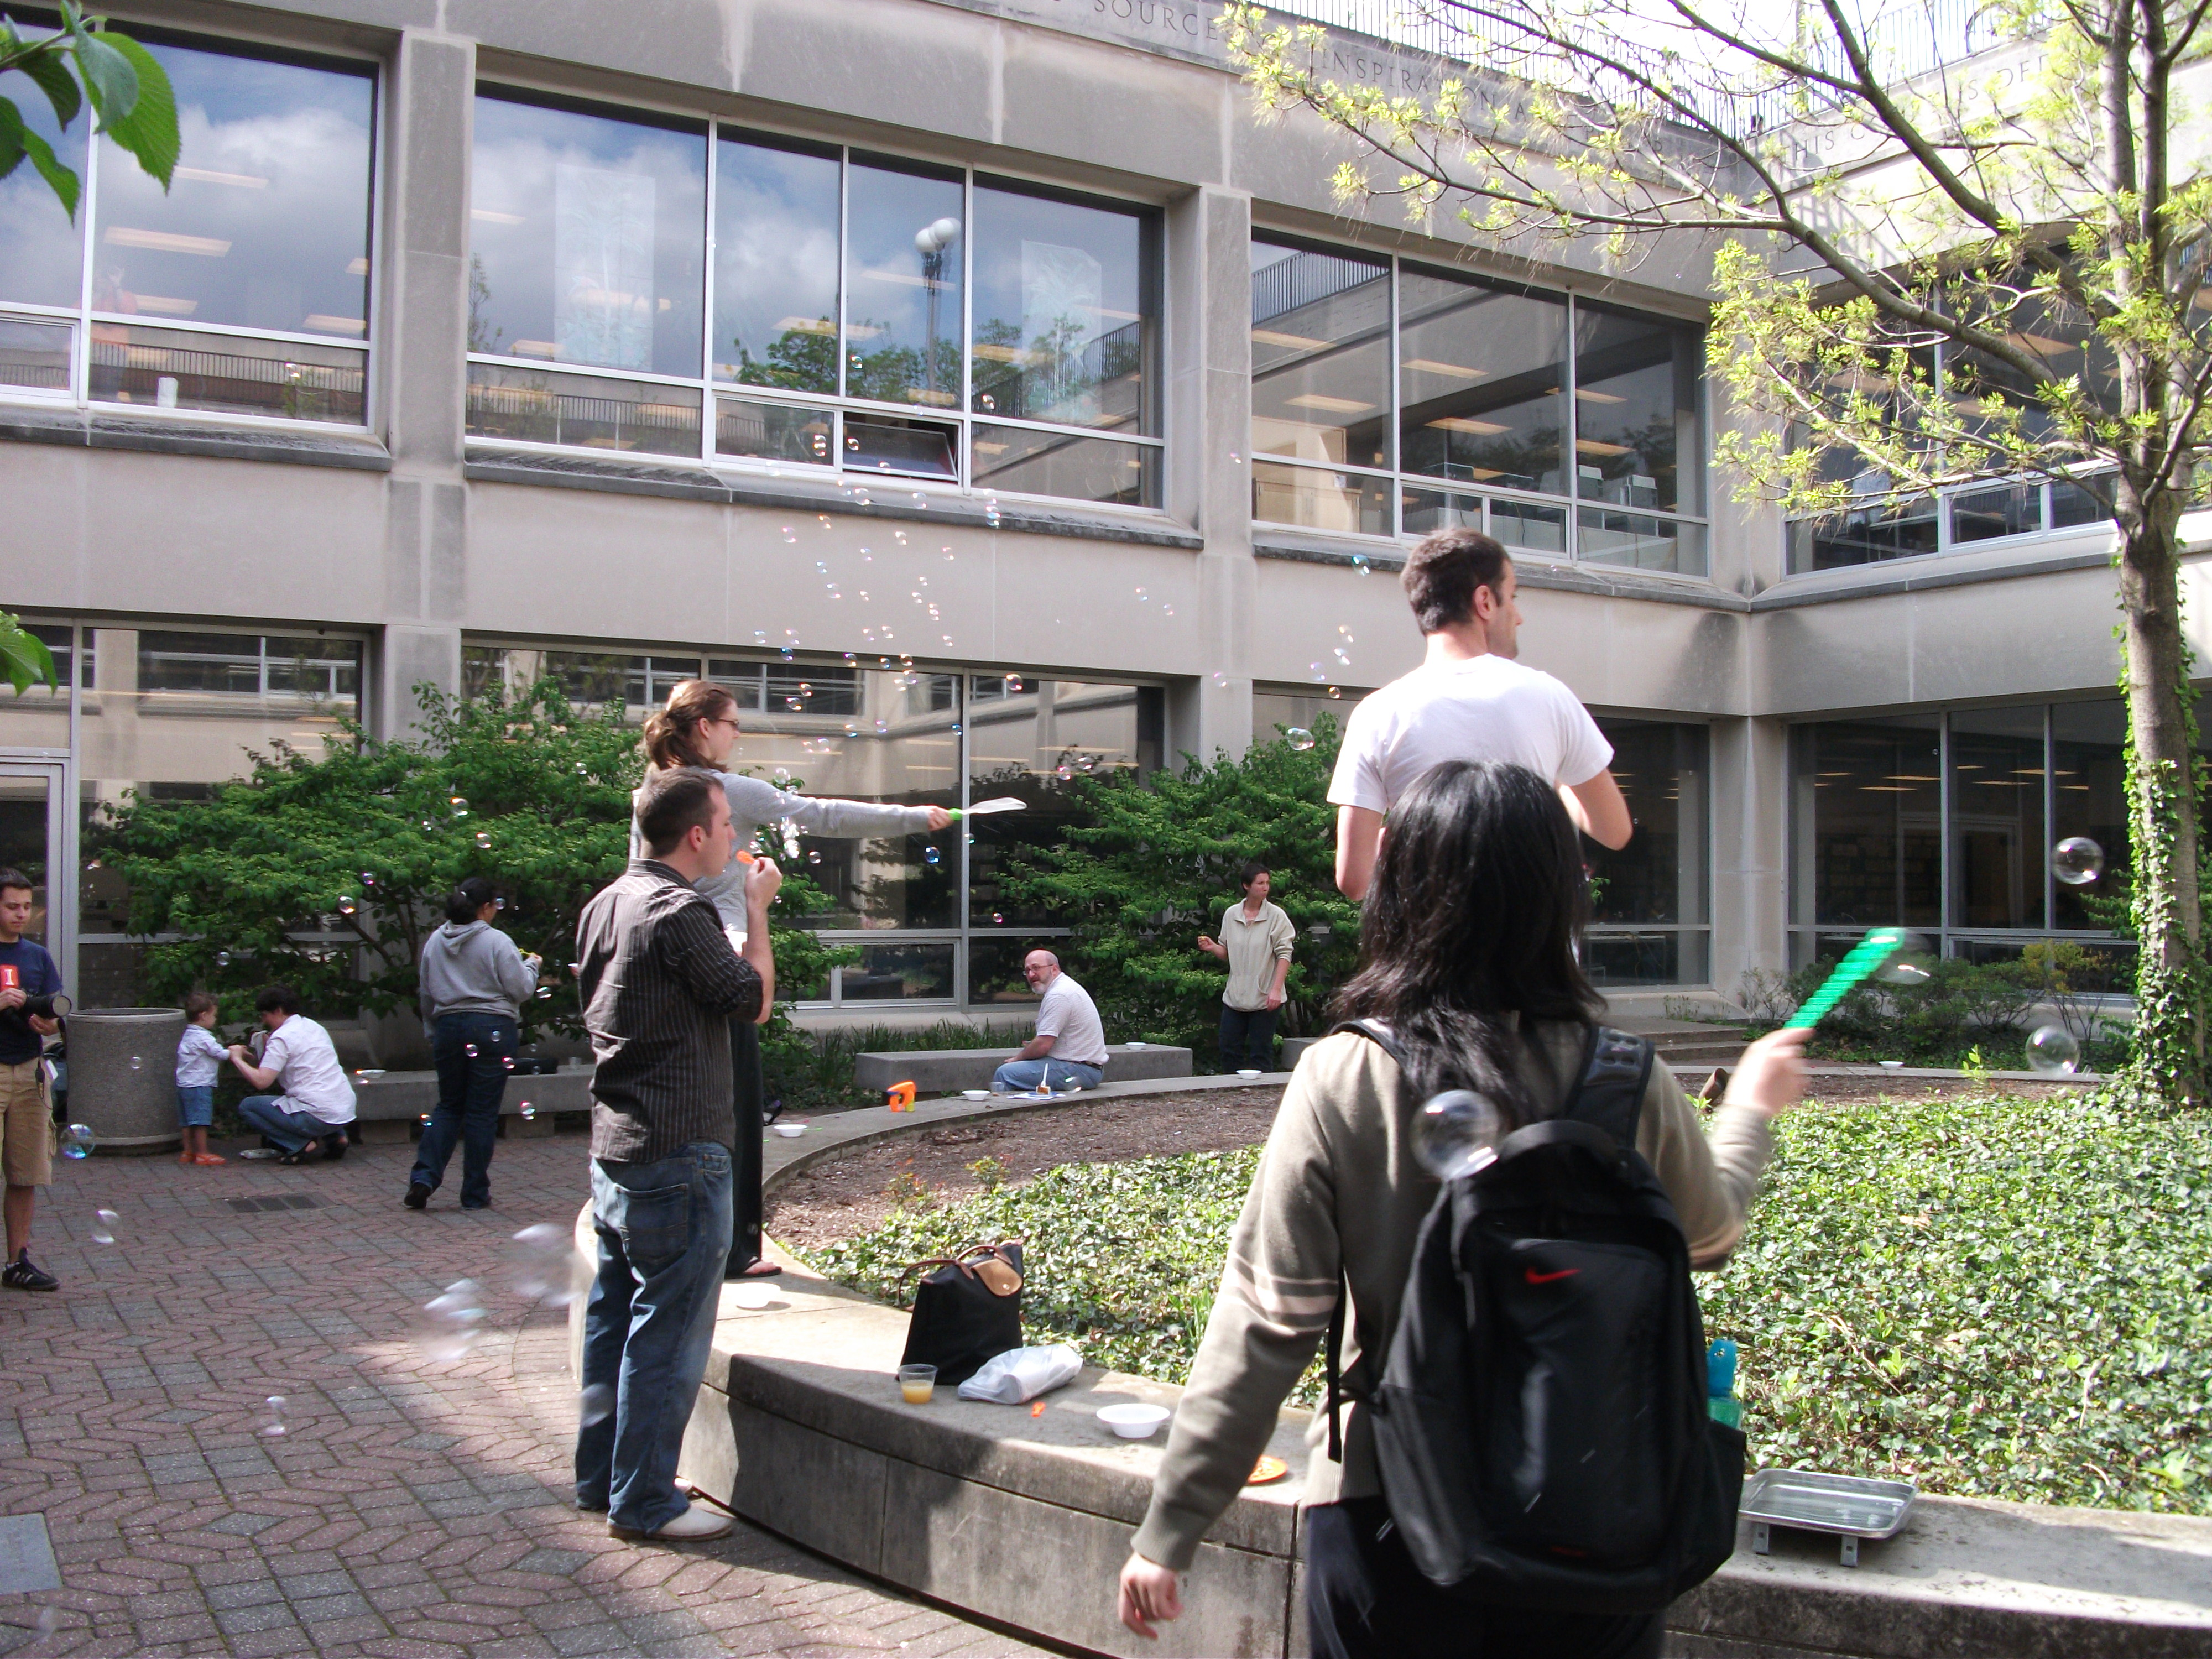 Blowing bubbles in UGL coutyard photo